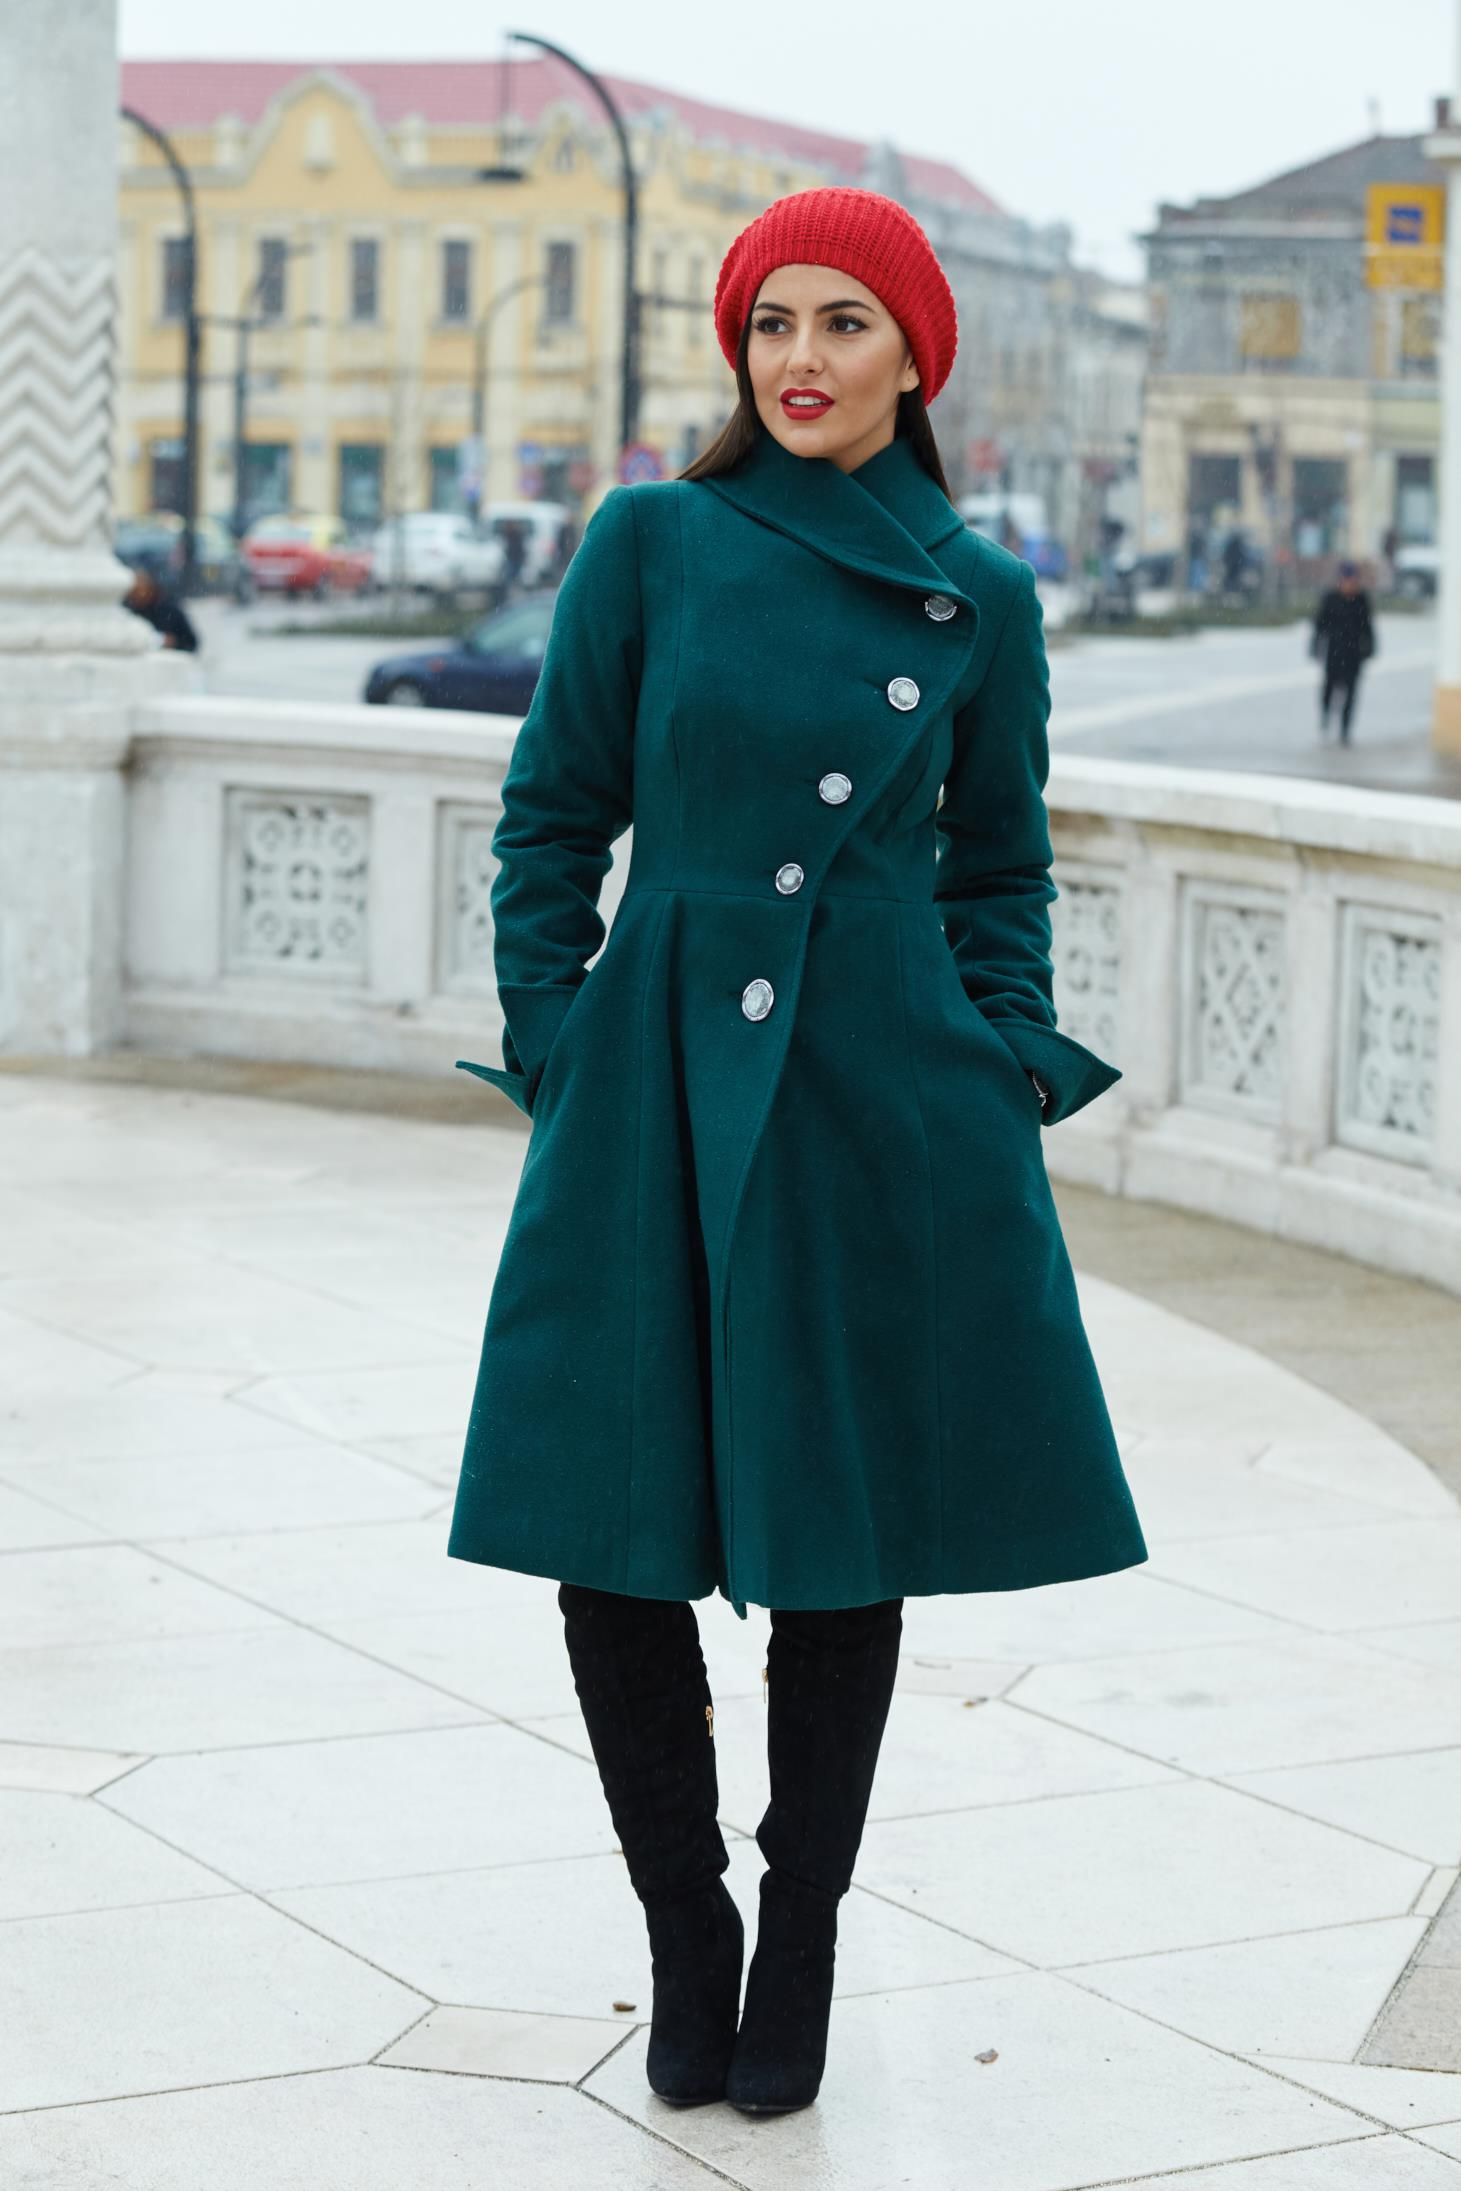 Artista green coat from wool with pockets with inside lining